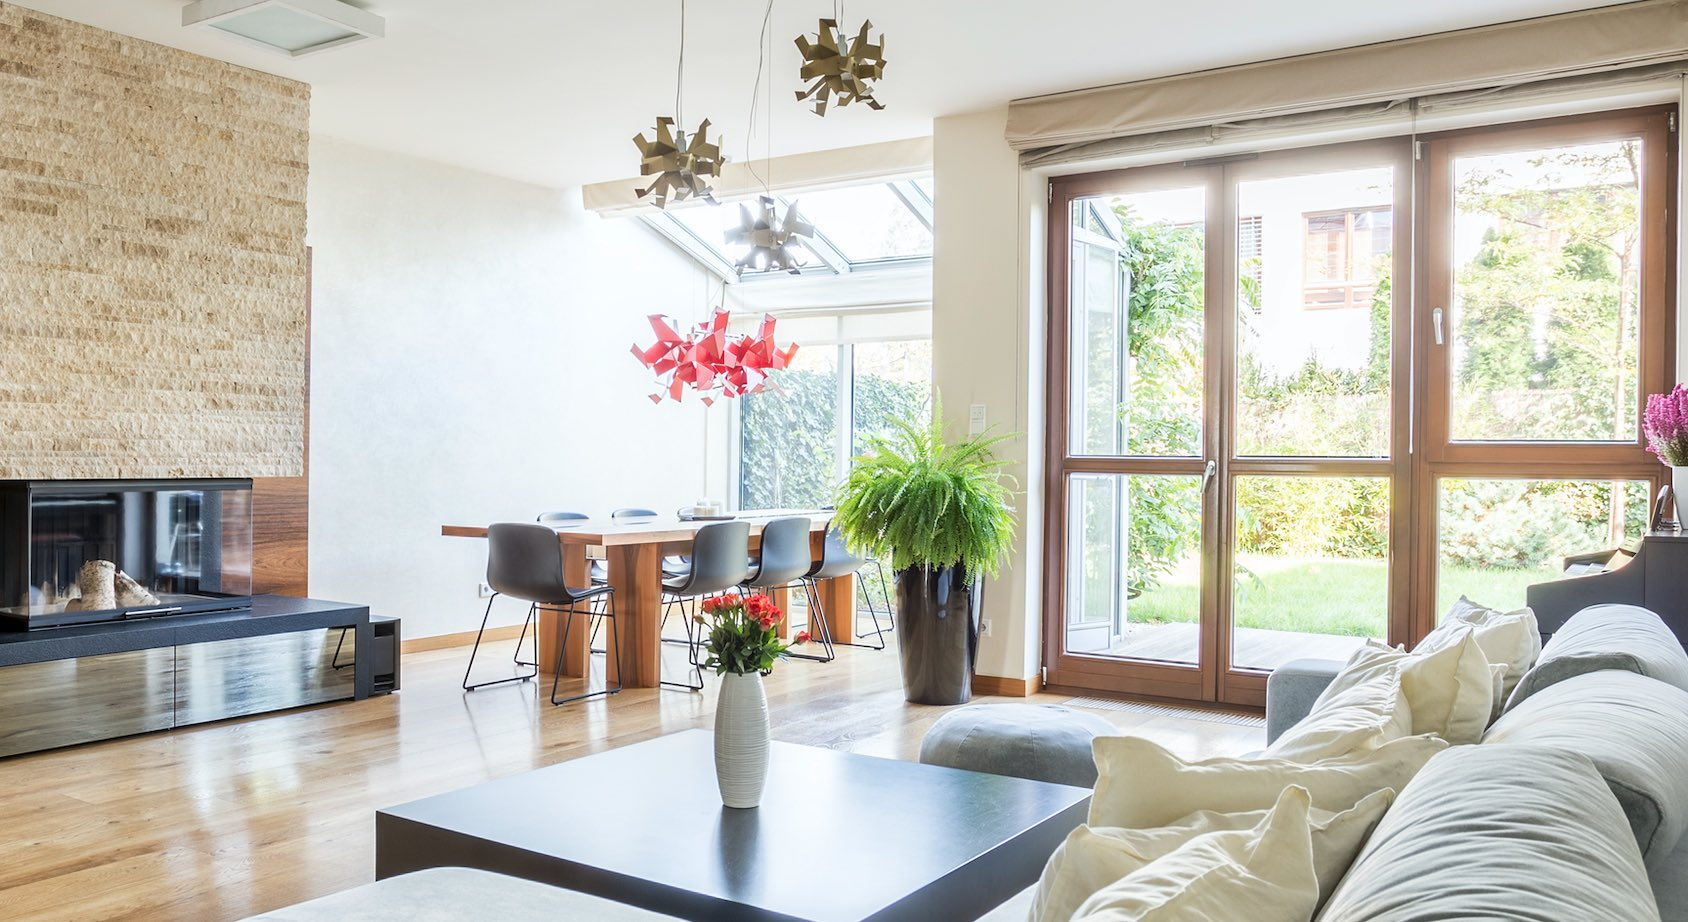 Like Home Improvement Projects? Window Film Offers Great Benefits! - Home Window Tinting in Denver, Colorado